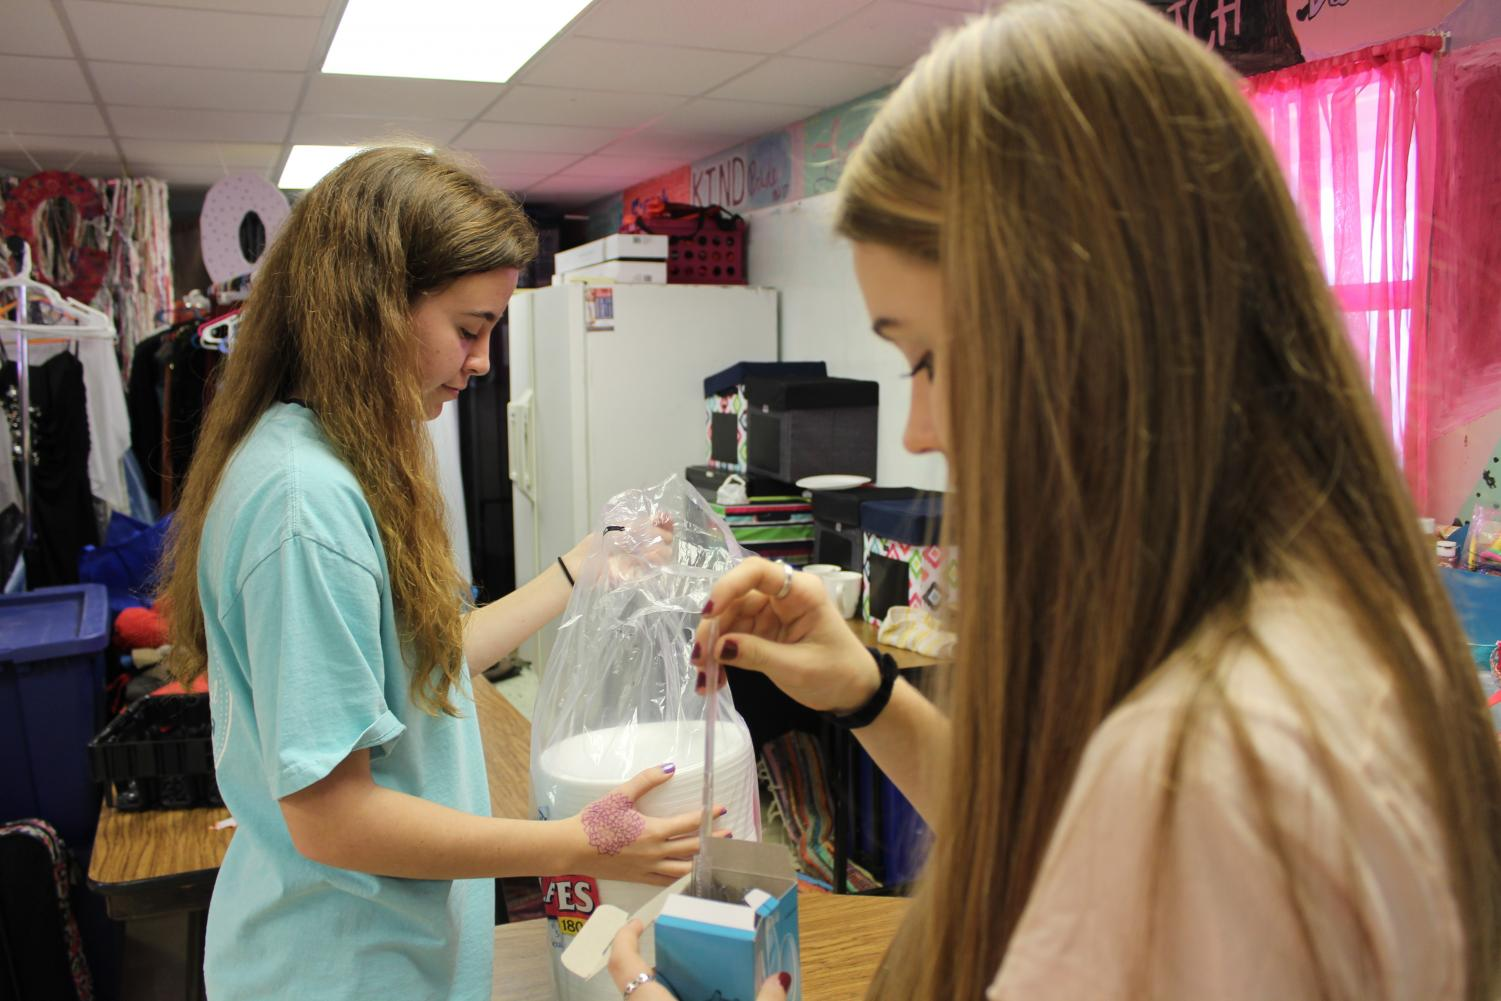 "Getting all the supplies ready, sophomores Jamie McPhaul (left) and Zoey Croft (right) sort utensils and plates they will provide for the family Student Council is ""adopting."" StuCo has participated in the Adopt a Family project the past year, and will also participate this year. ""We did a really good job last year, but this year we plan to blow last year's baskets out of the water,"" McPhaul said."